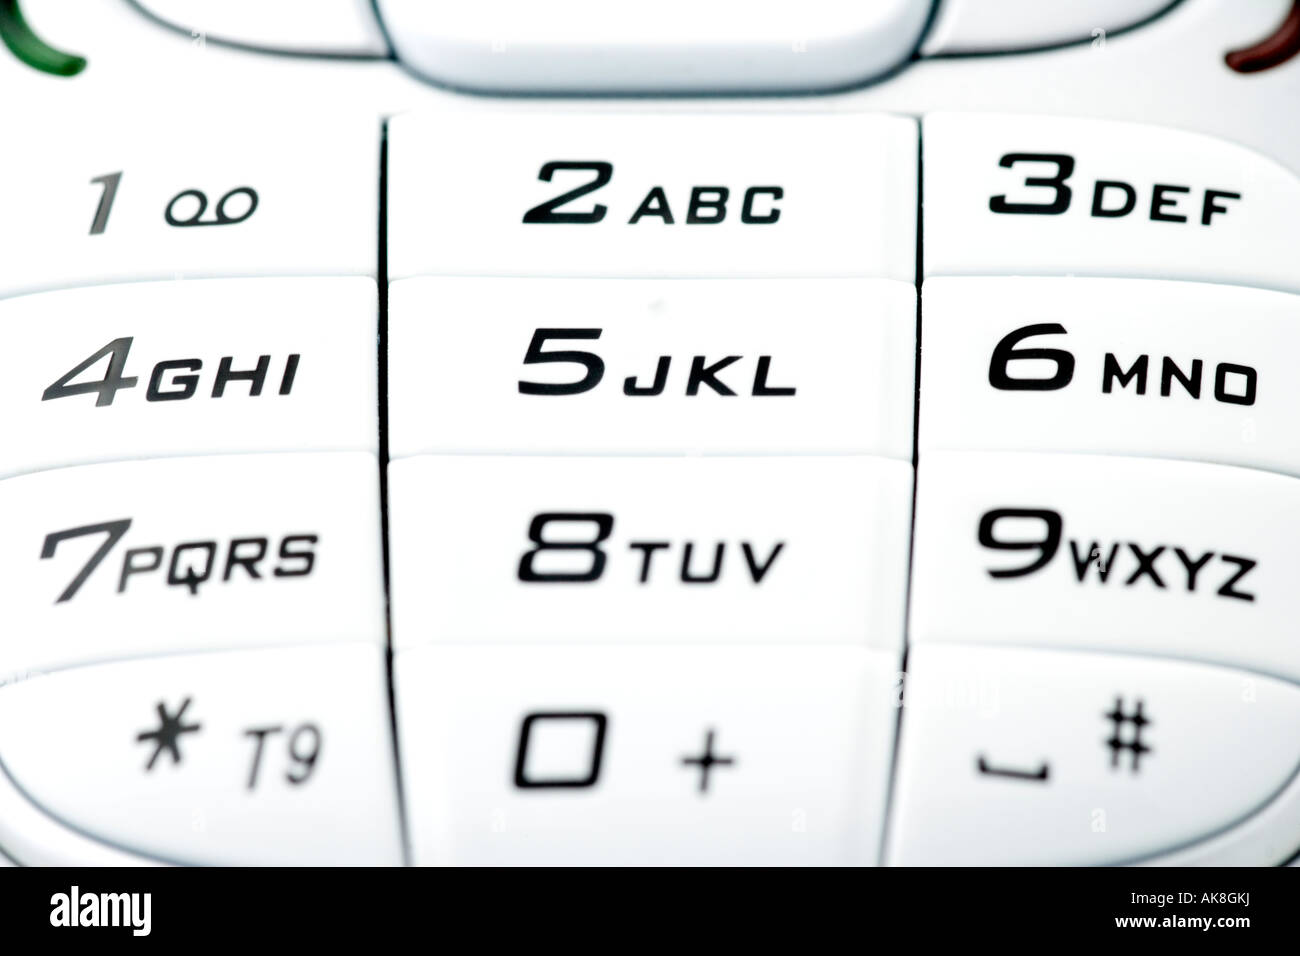 Close Up Photography Of Numbers And Symbols On Keys On The Keypad Of